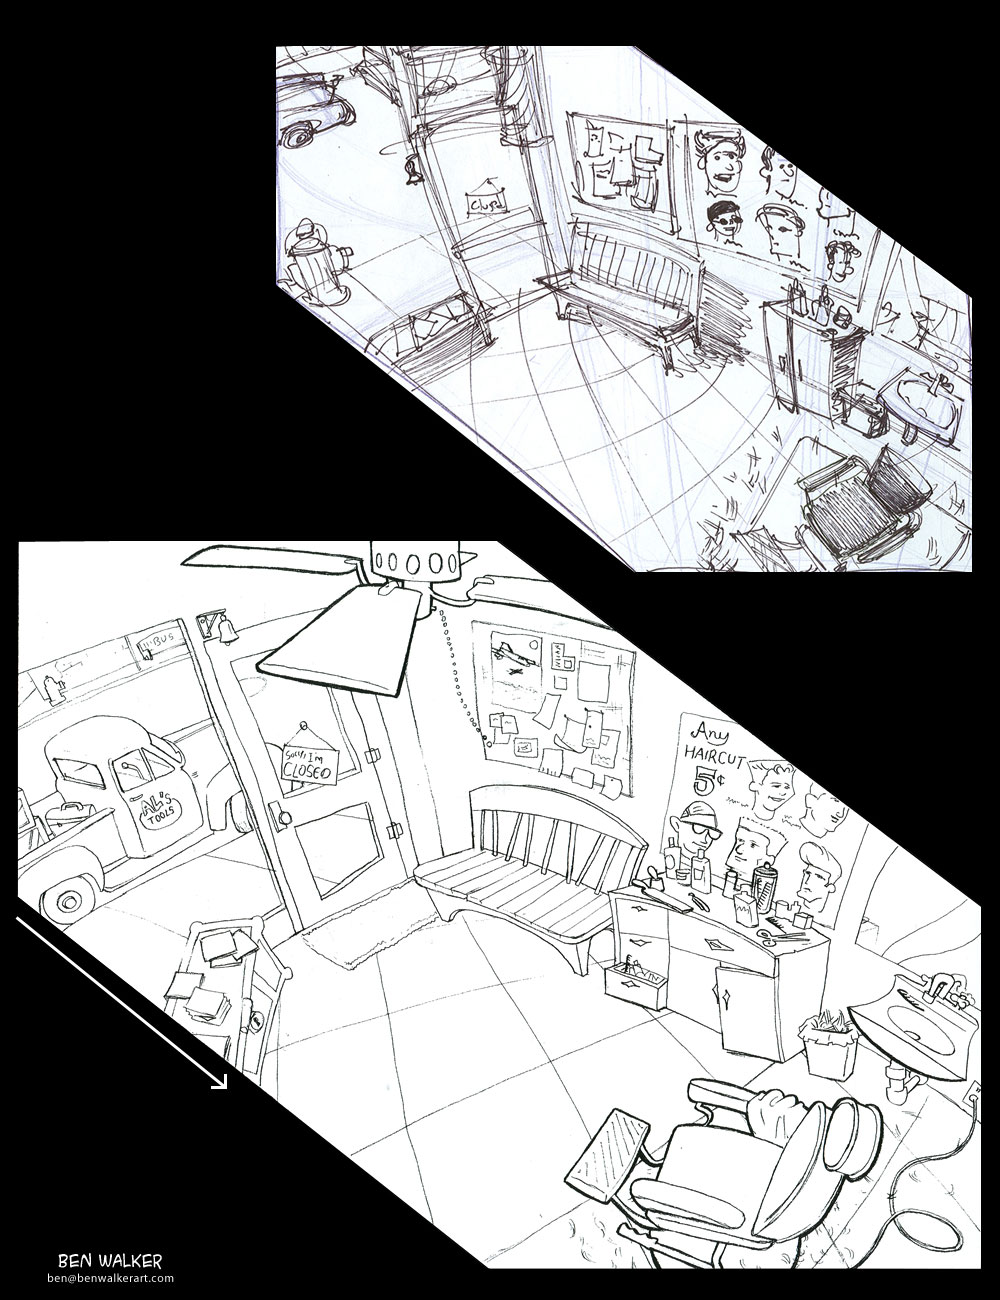 Character Design Layout : Art of ben walker character design and layout for animation